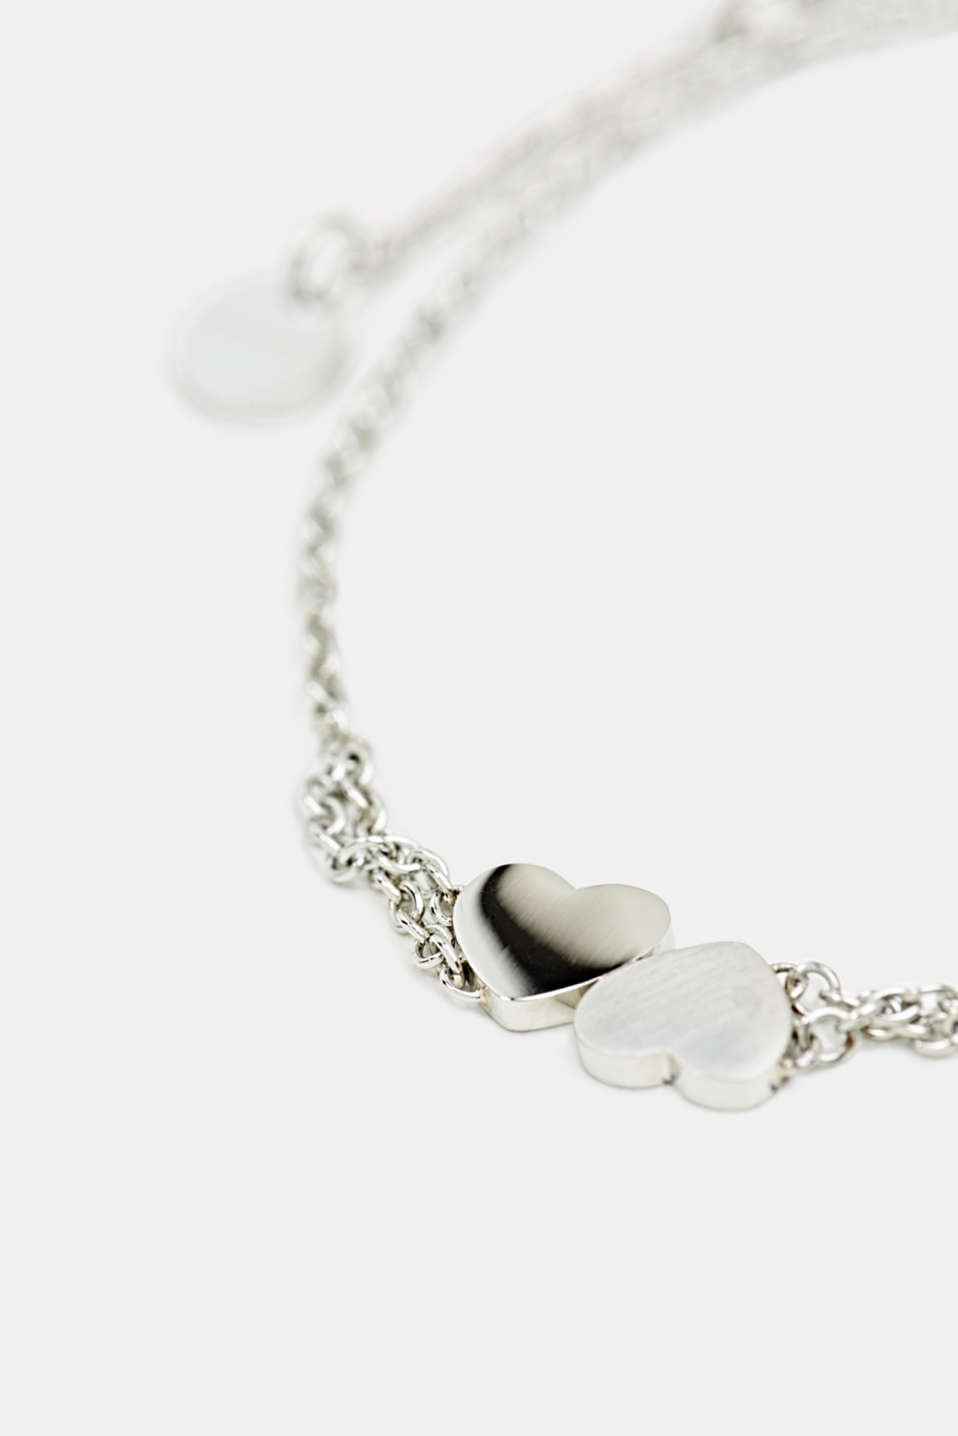 Bracelet with heart charm, stainless steel, LCSILVER, detail image number 1